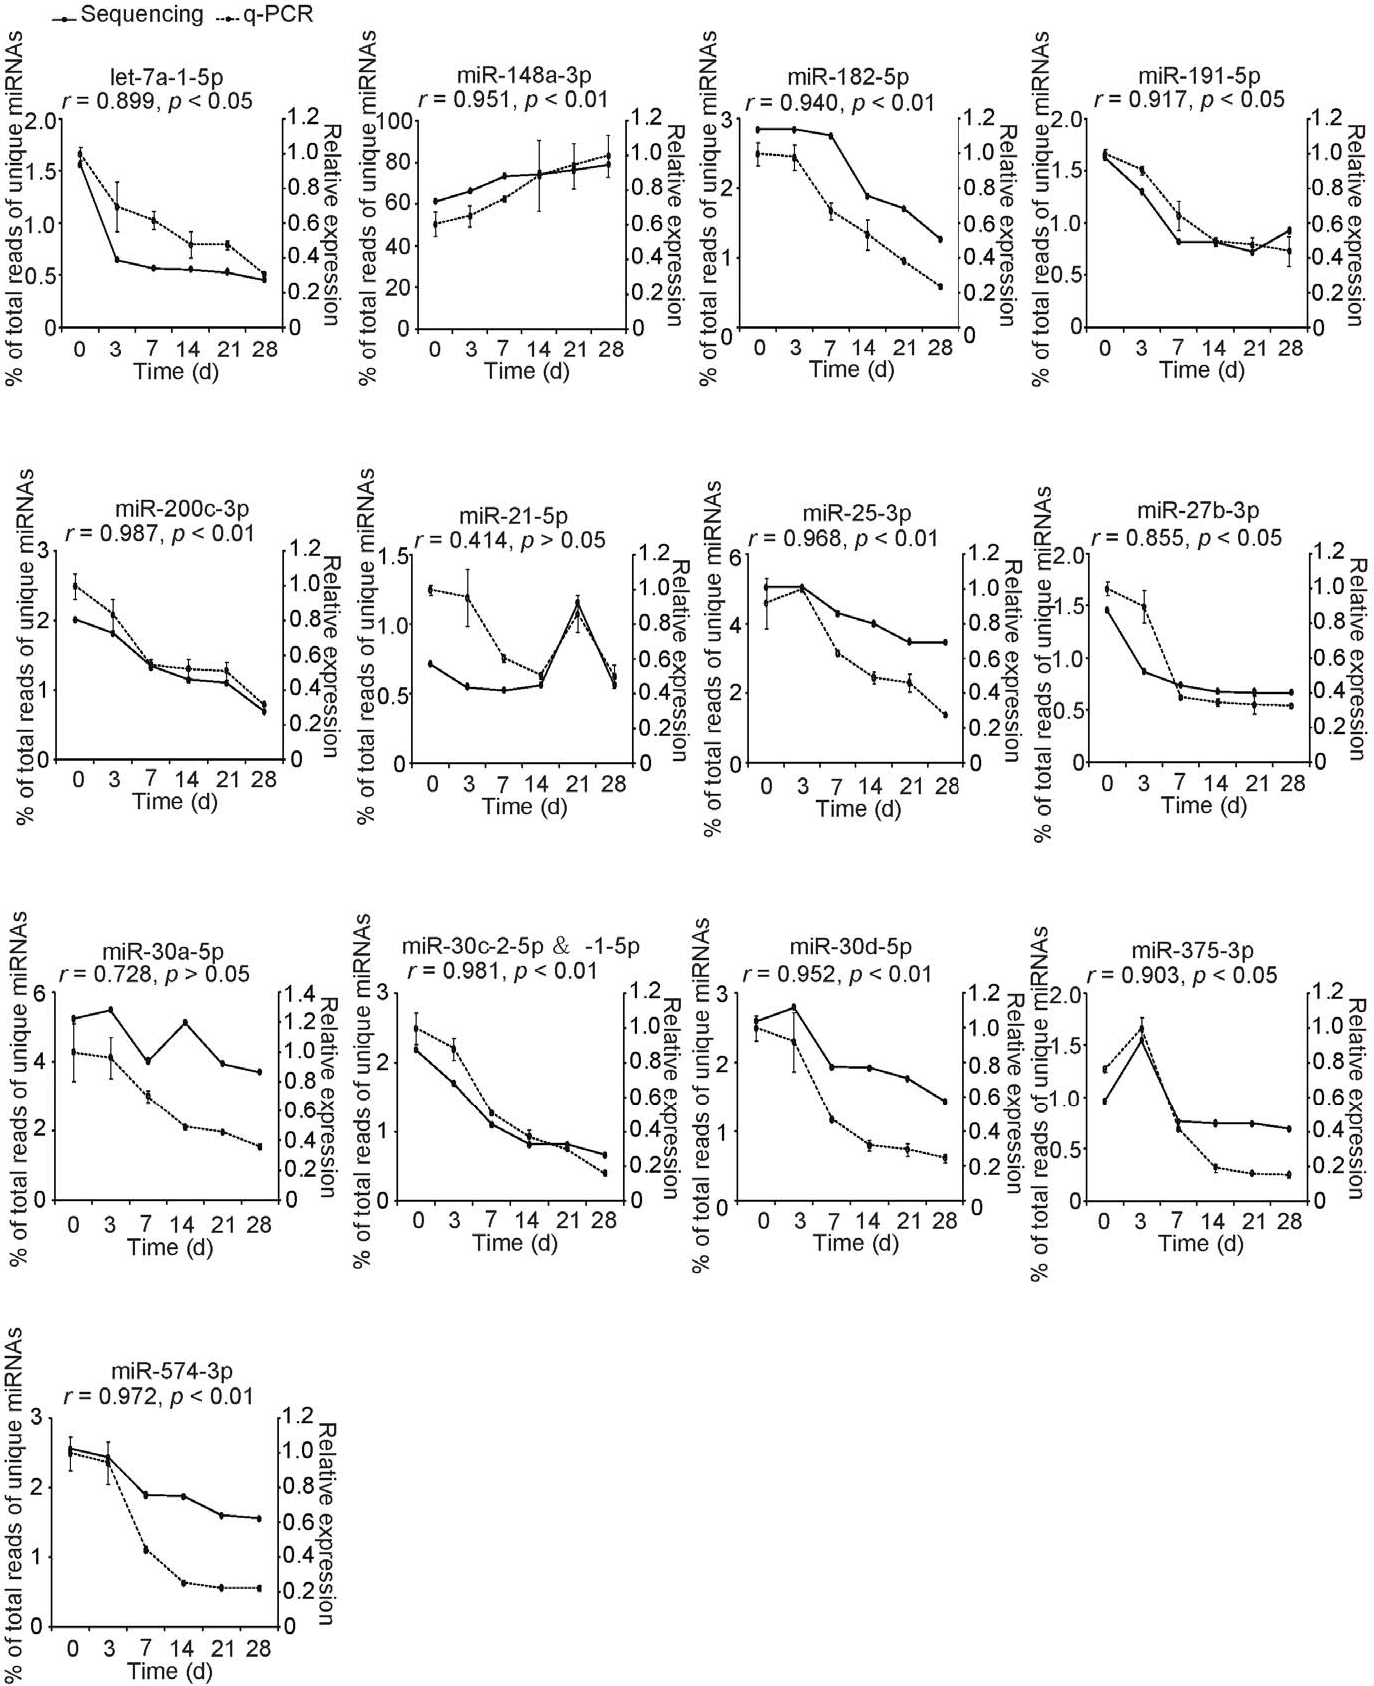 Figure 4. Lactation-related expression patterns of 13 abundant immune-related miRNAs. The data are normally distributed (KolmogorovSmirnov test, p.0.05). Pearson correlation was used to determine the relation of miRNAs expression changes between the q-PCR and the deep sequencing approaches. Values are means6SD. doi:10.1371/journal.pone.0043691.g004